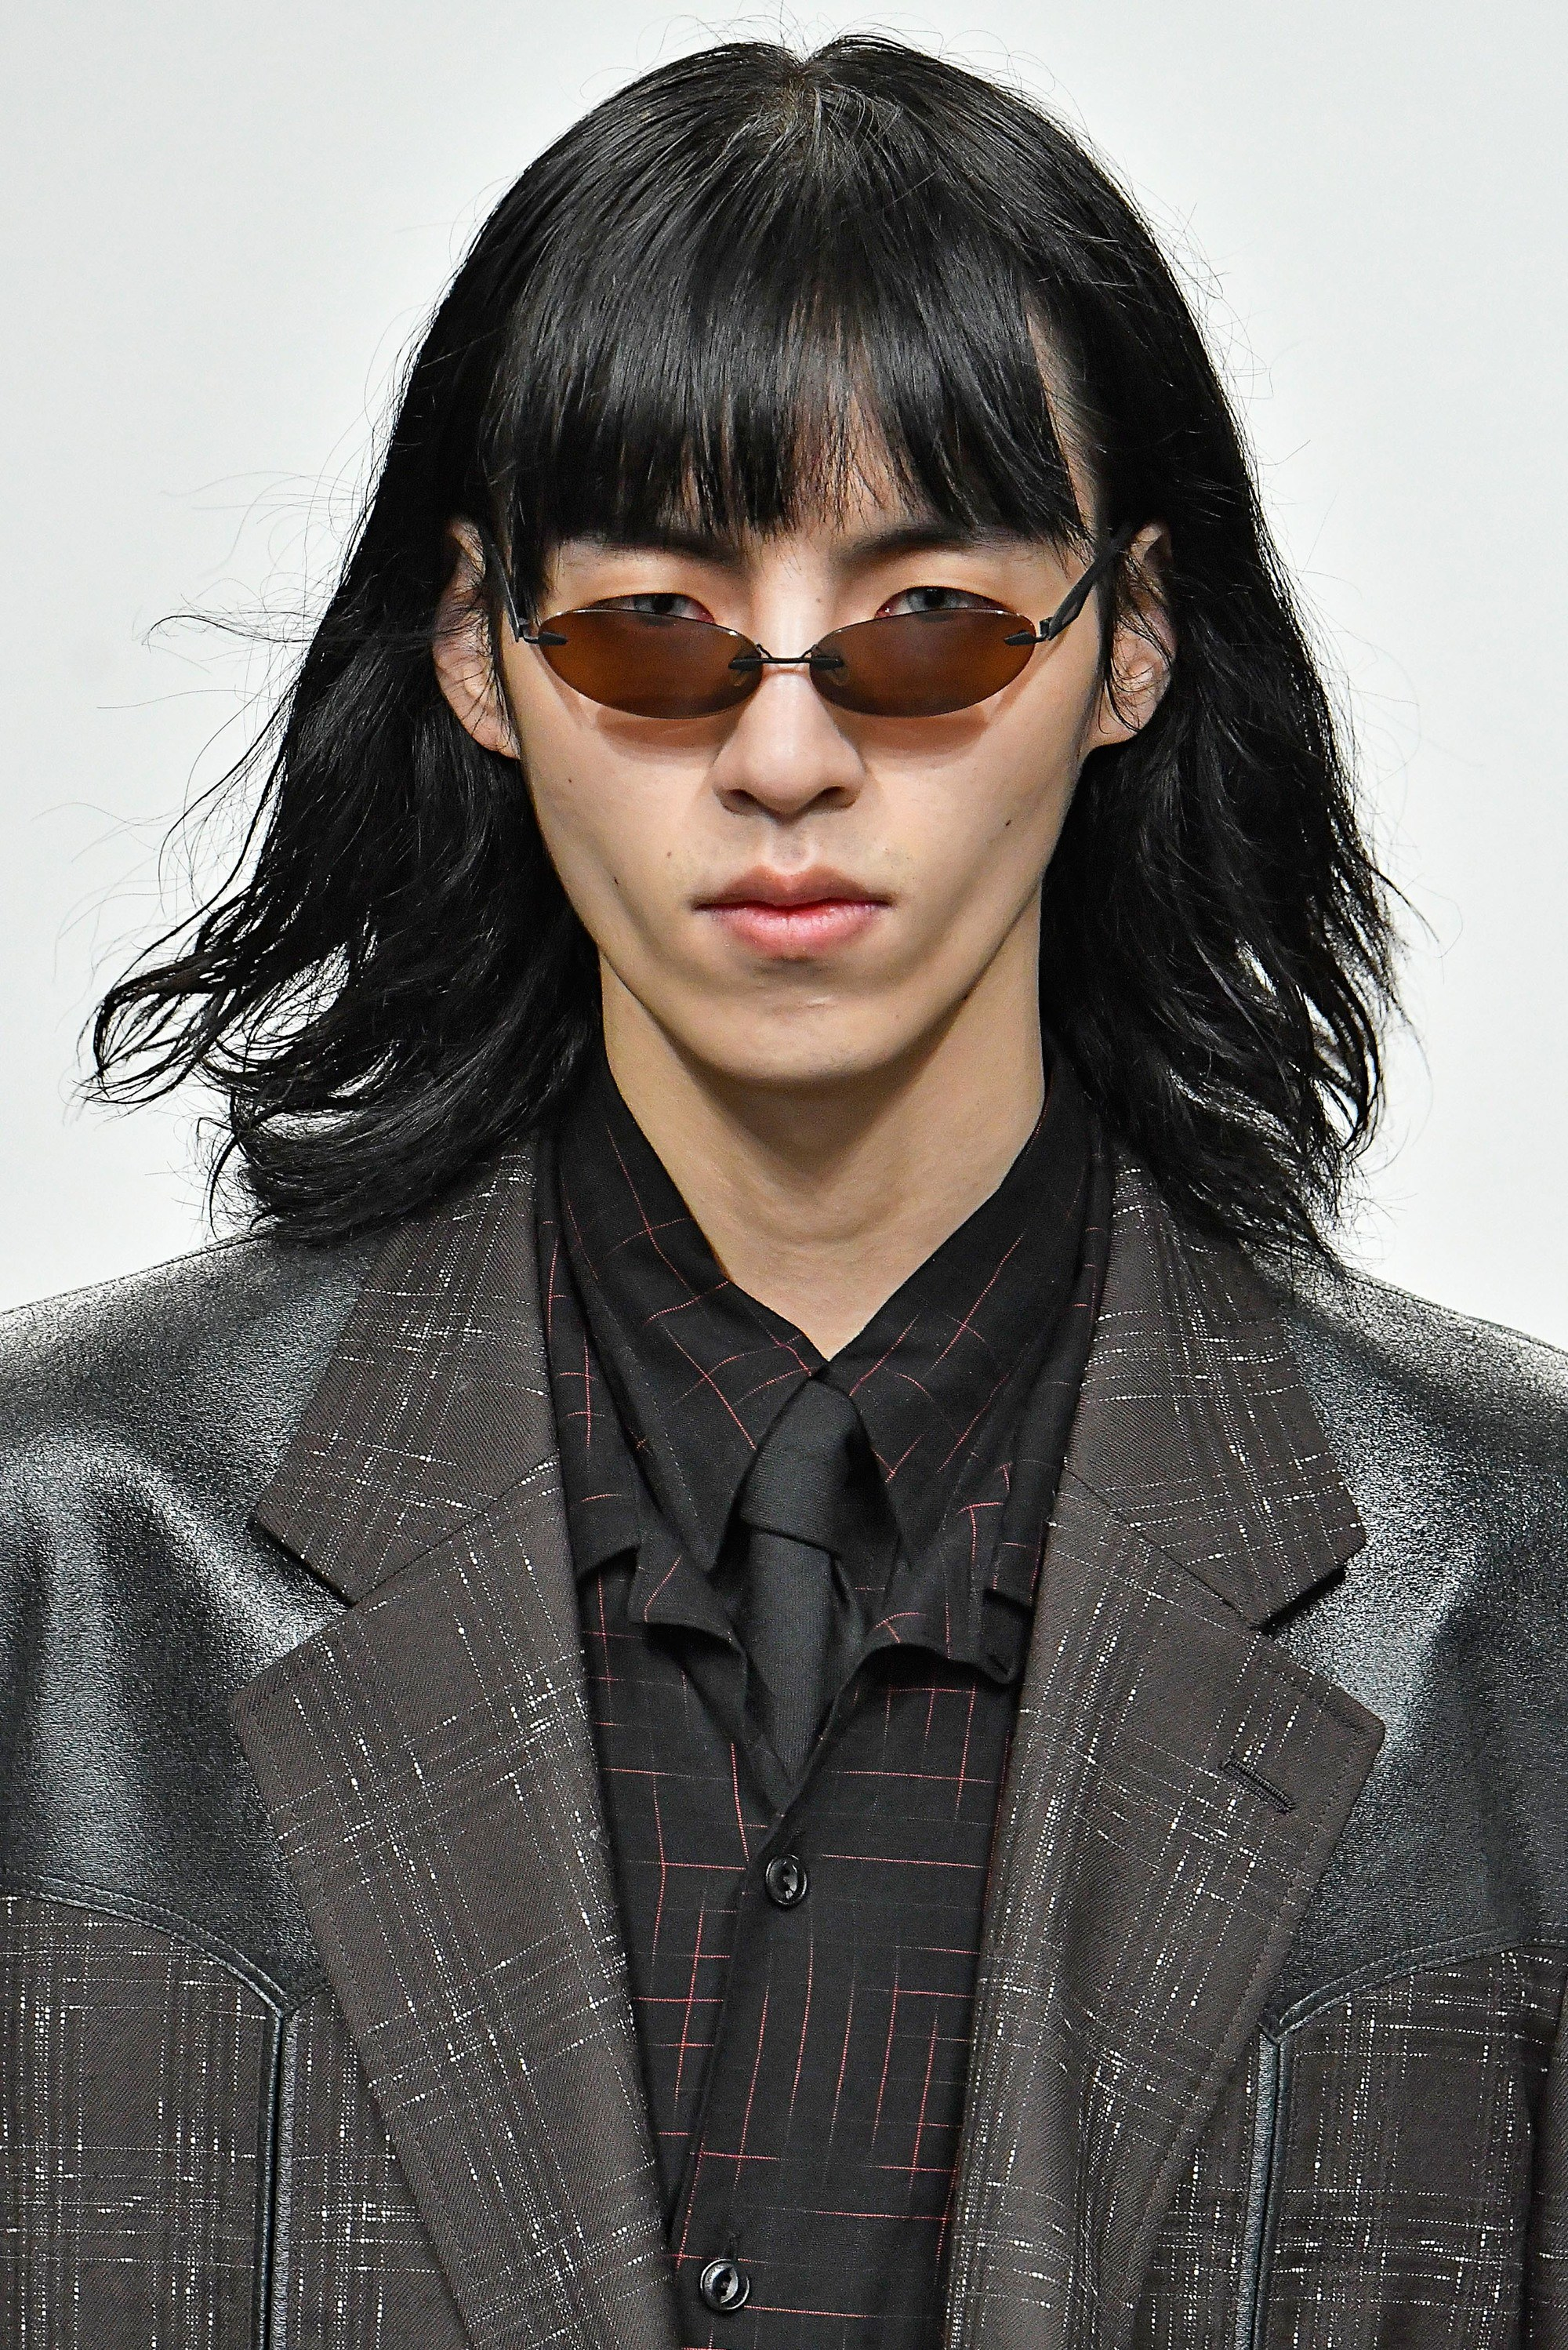 male model at john lawrence sullivan lfwm aw18 show with dark shoulder length hair with a fringe